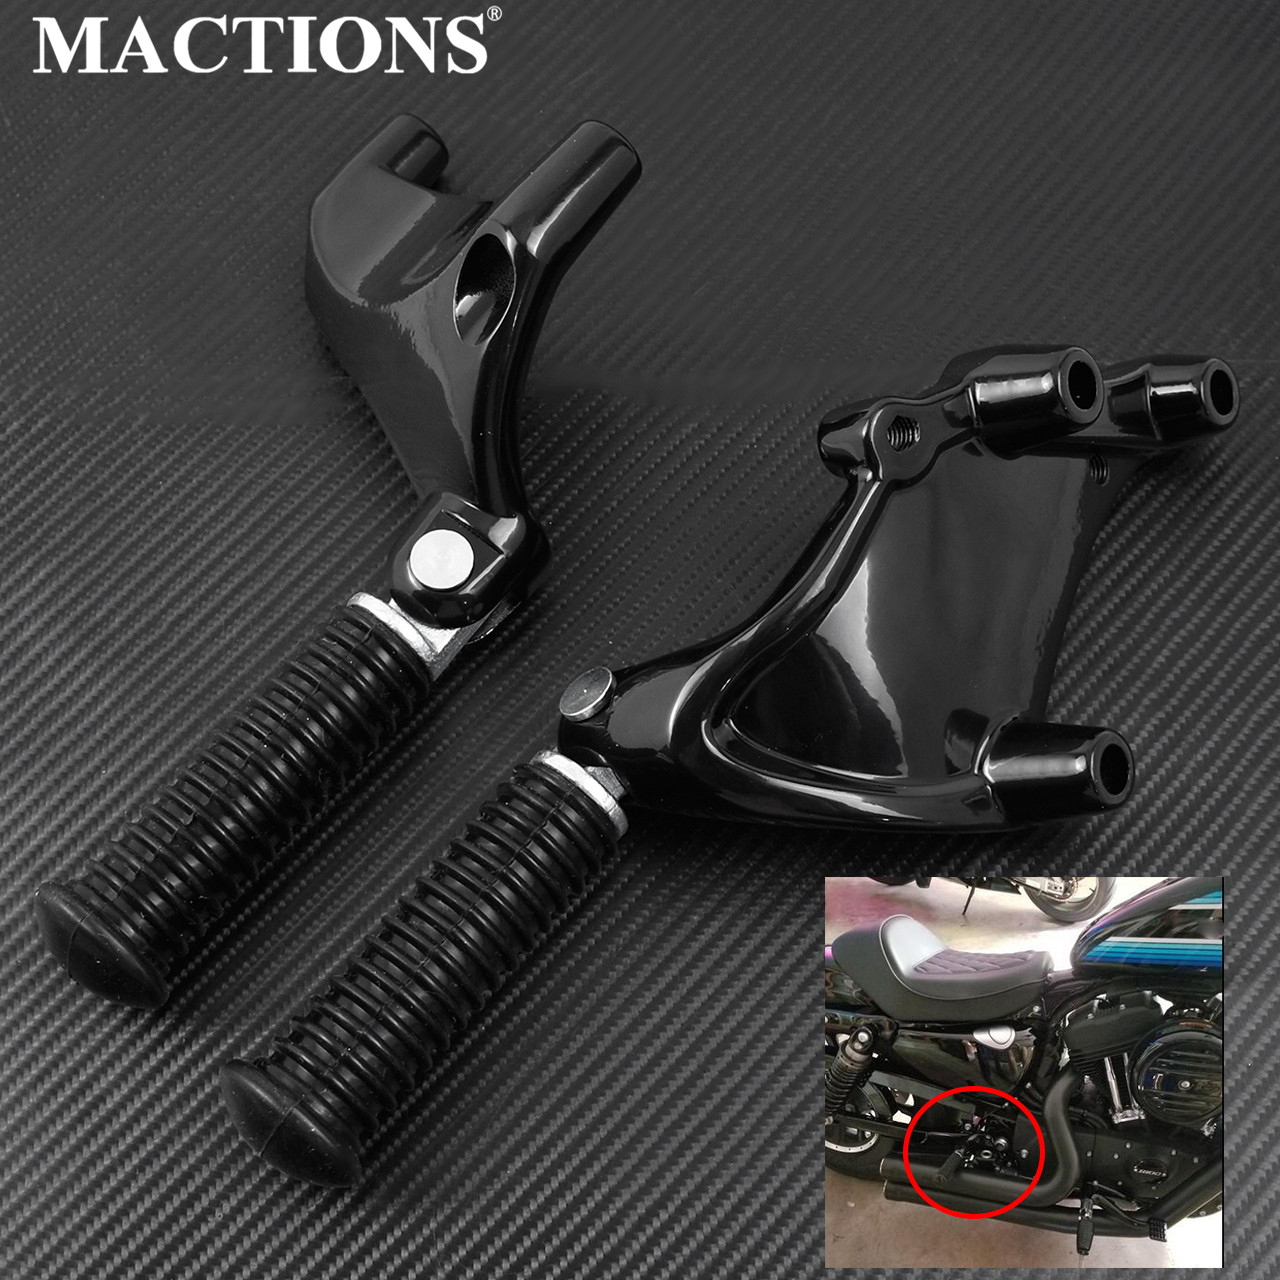 Motorcycle Rear Passenger Foot Pegs Mount Black Pedal For Harley Sportster Iron 883 1200 XL 48 72 SuperLow 2014-2019